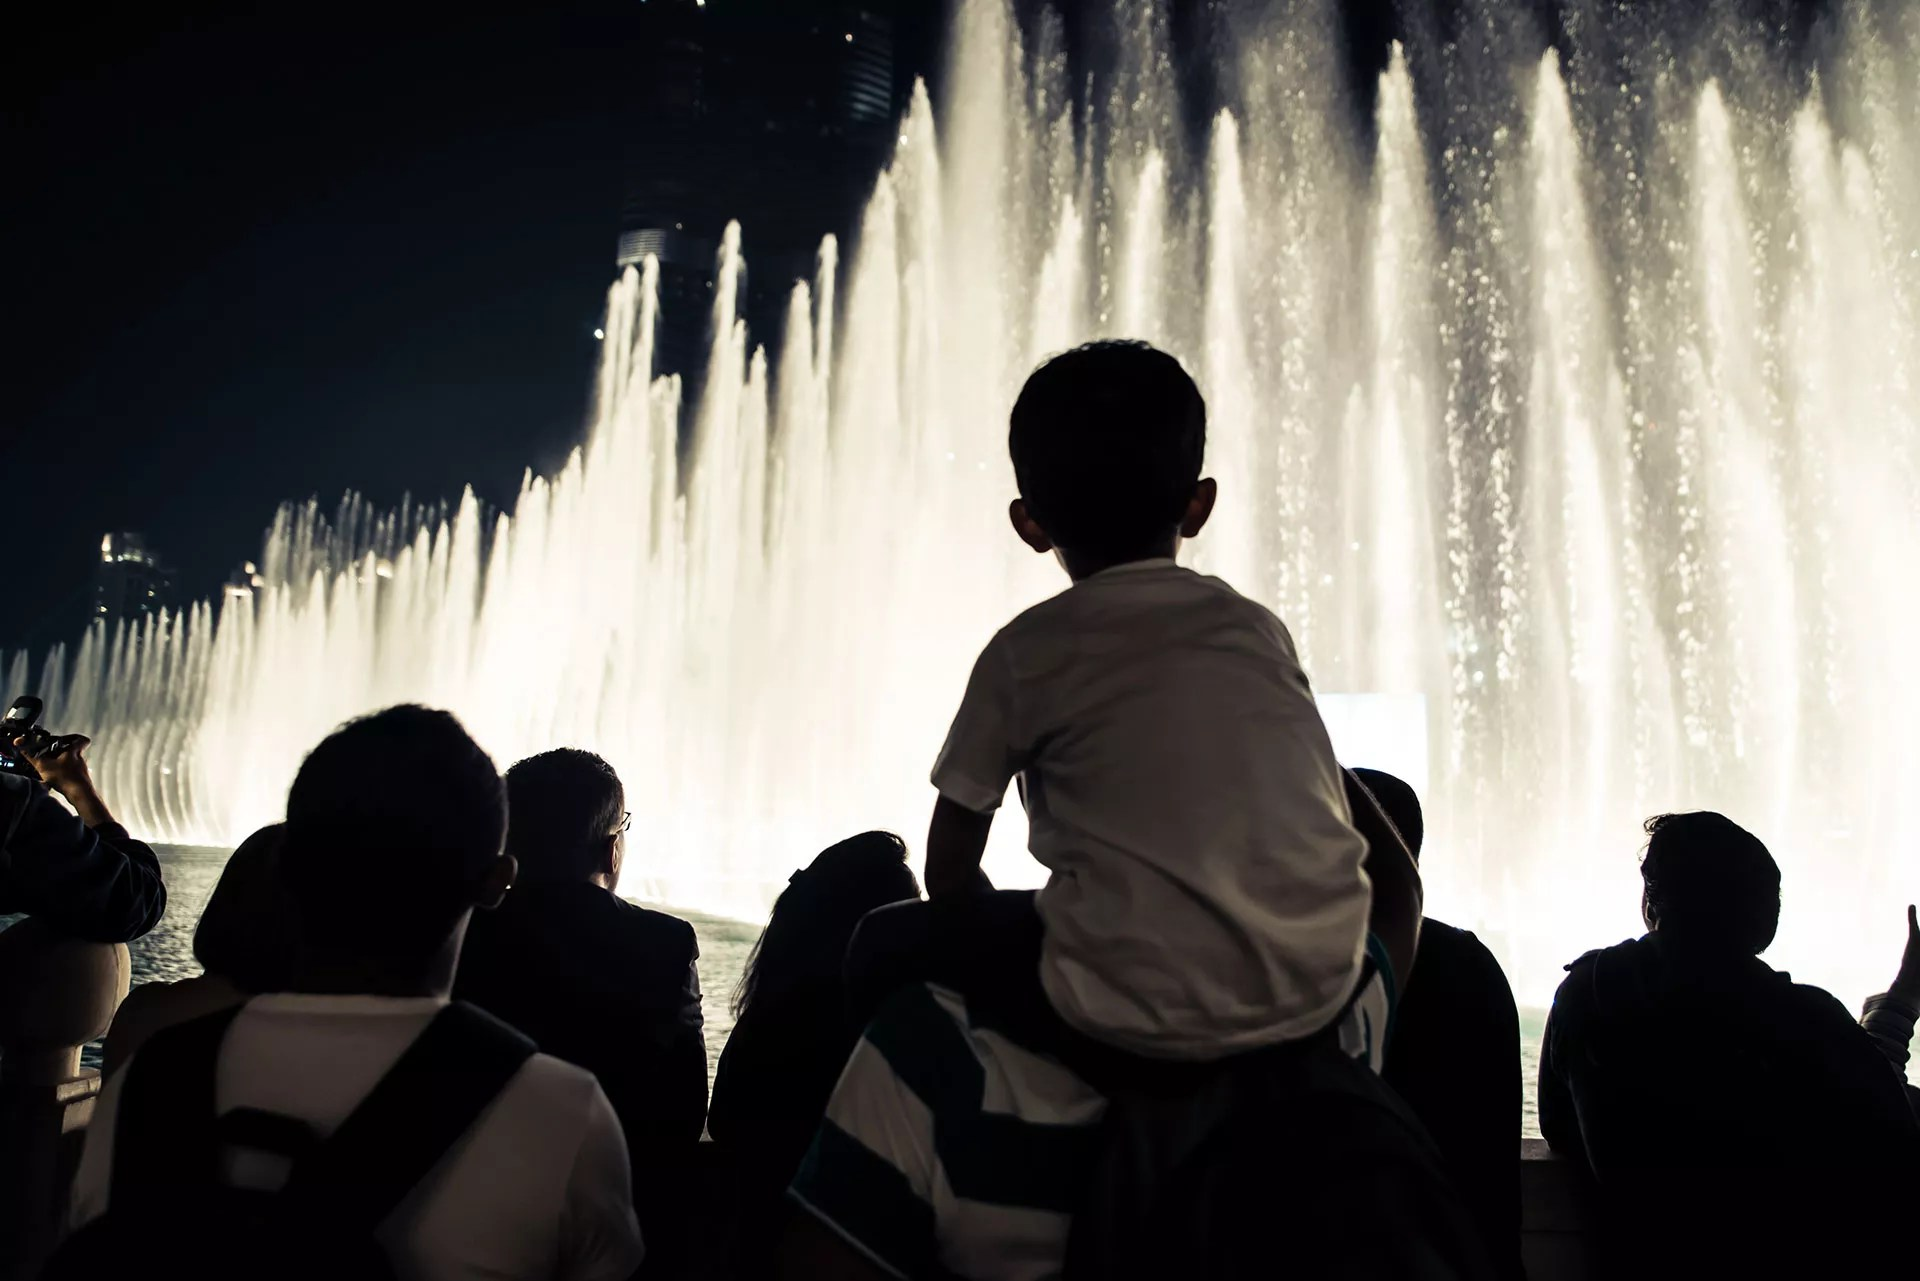 64 Things to Do in Las Vegas With Children via @extraspace